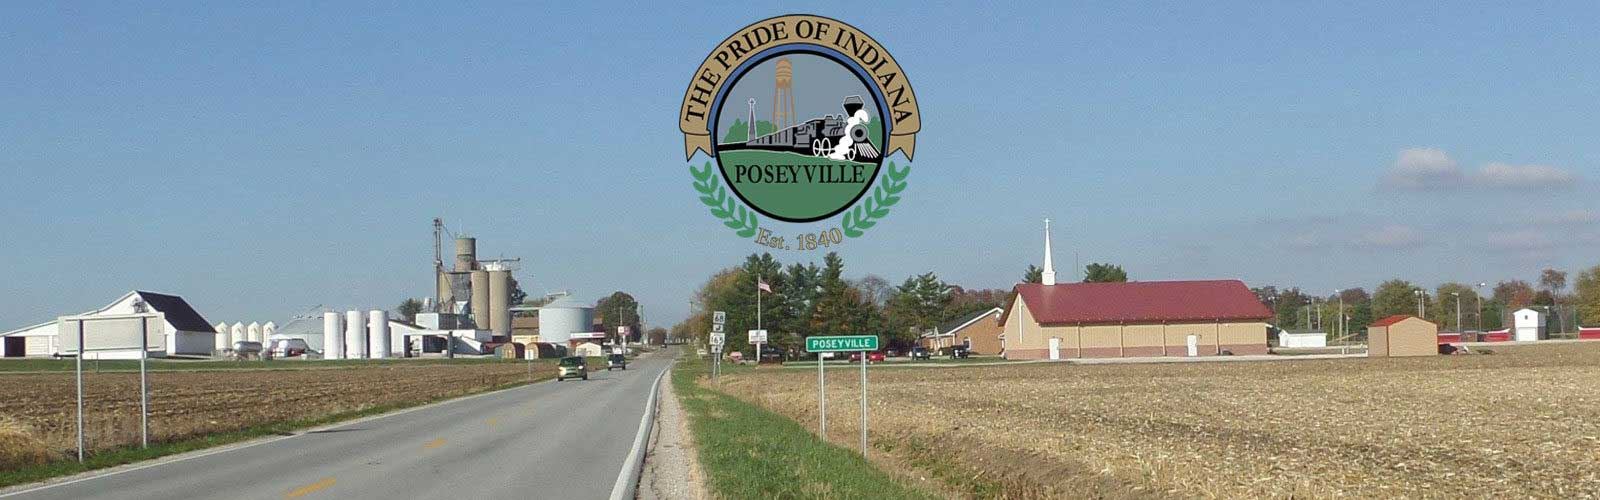 Town of Poseyville